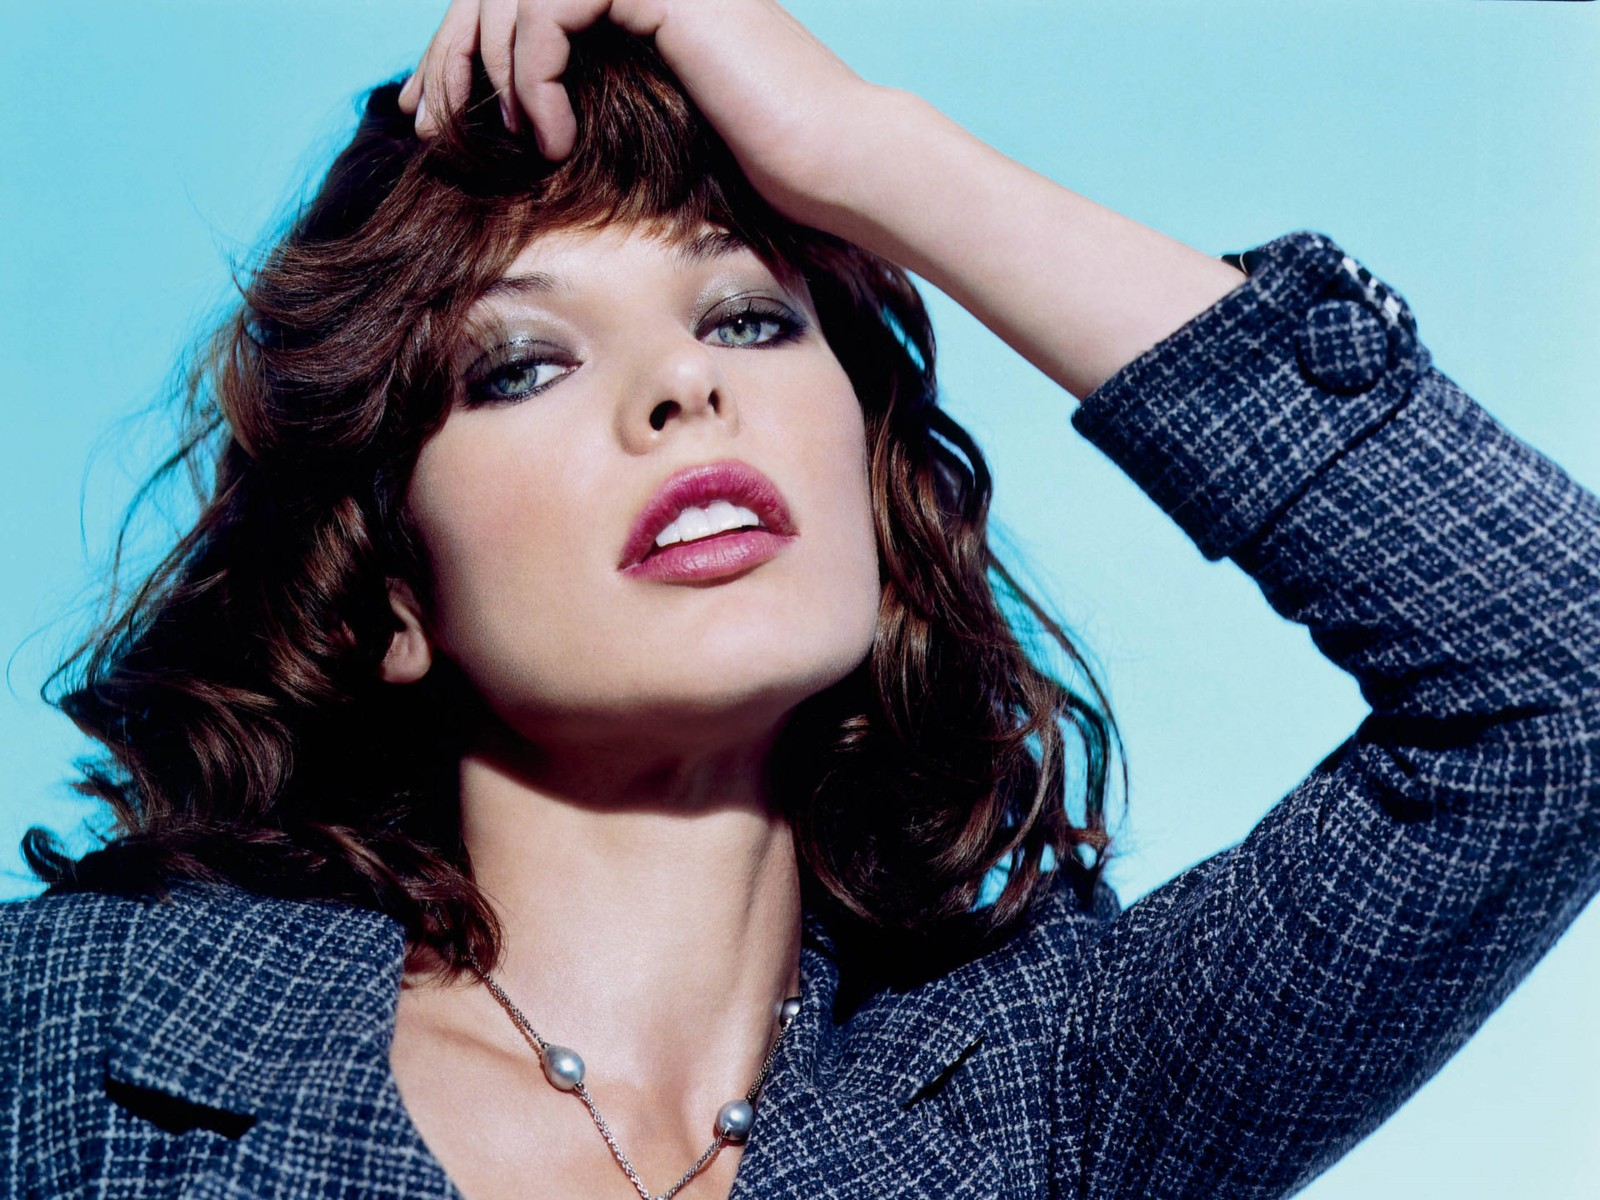 Milla Jovovich 30 Beautiful Photos Of Milla Jovovich 27 Milla Jovovich, Beautiful Photos Of Milla Jovovich